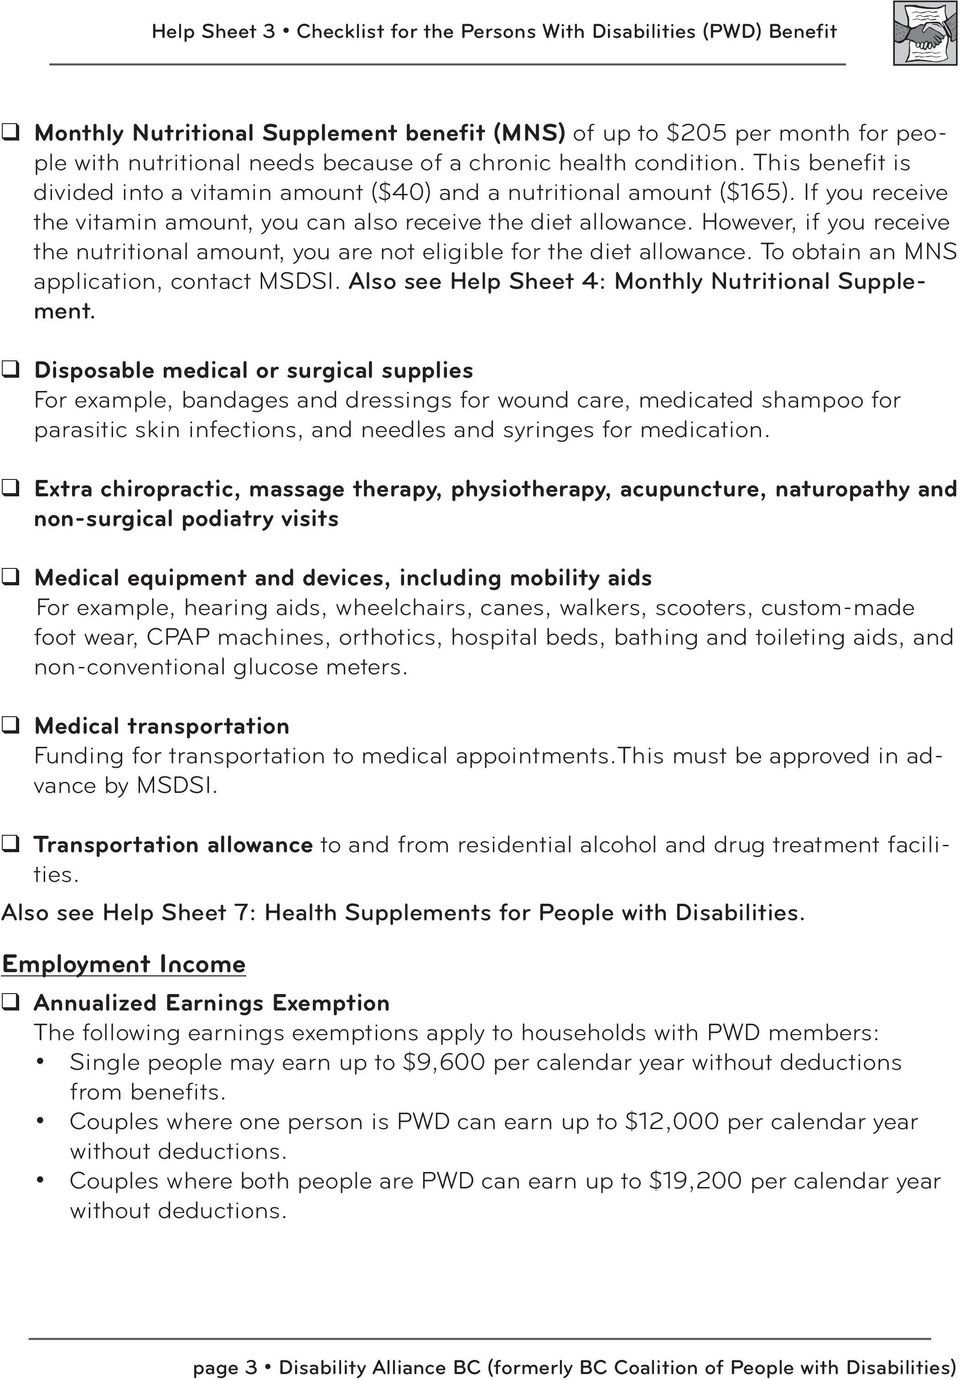 Checklist for the Persons with Disabilities (PWD) Benefit - PDF